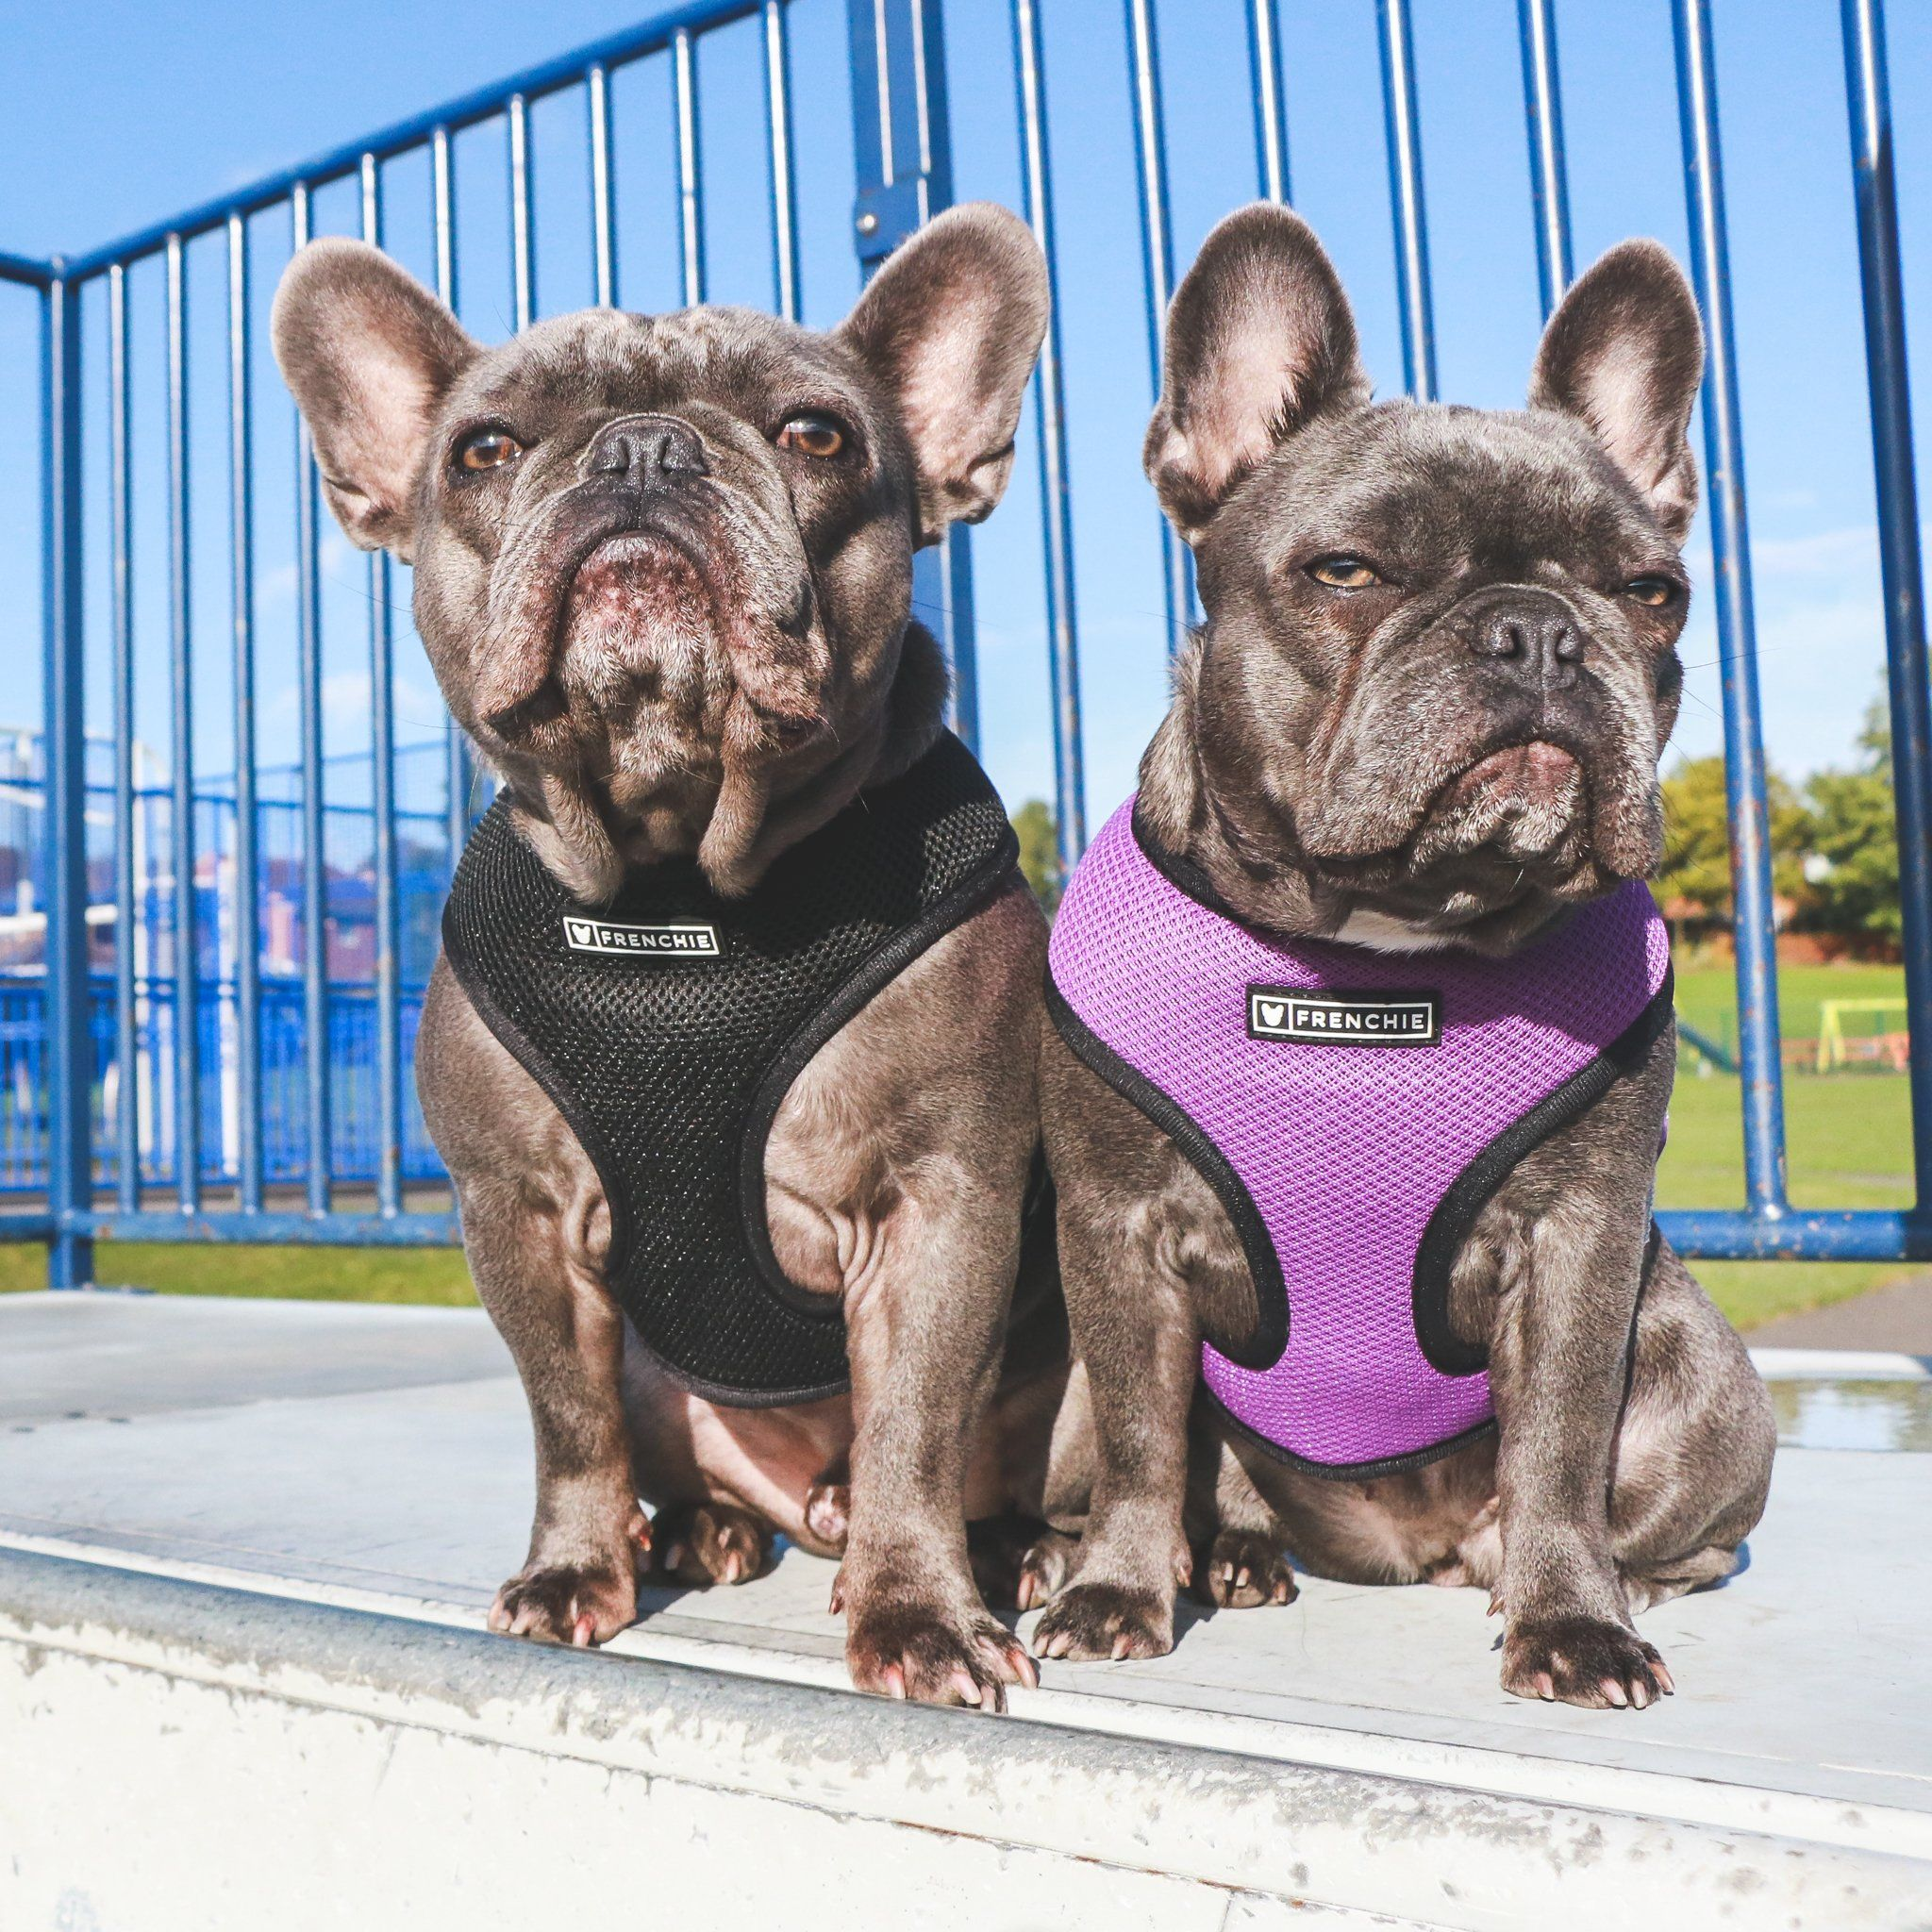 NEW ITEM! *NOW AVAILABLE IN SIZE SMALL The Frenchie Duo